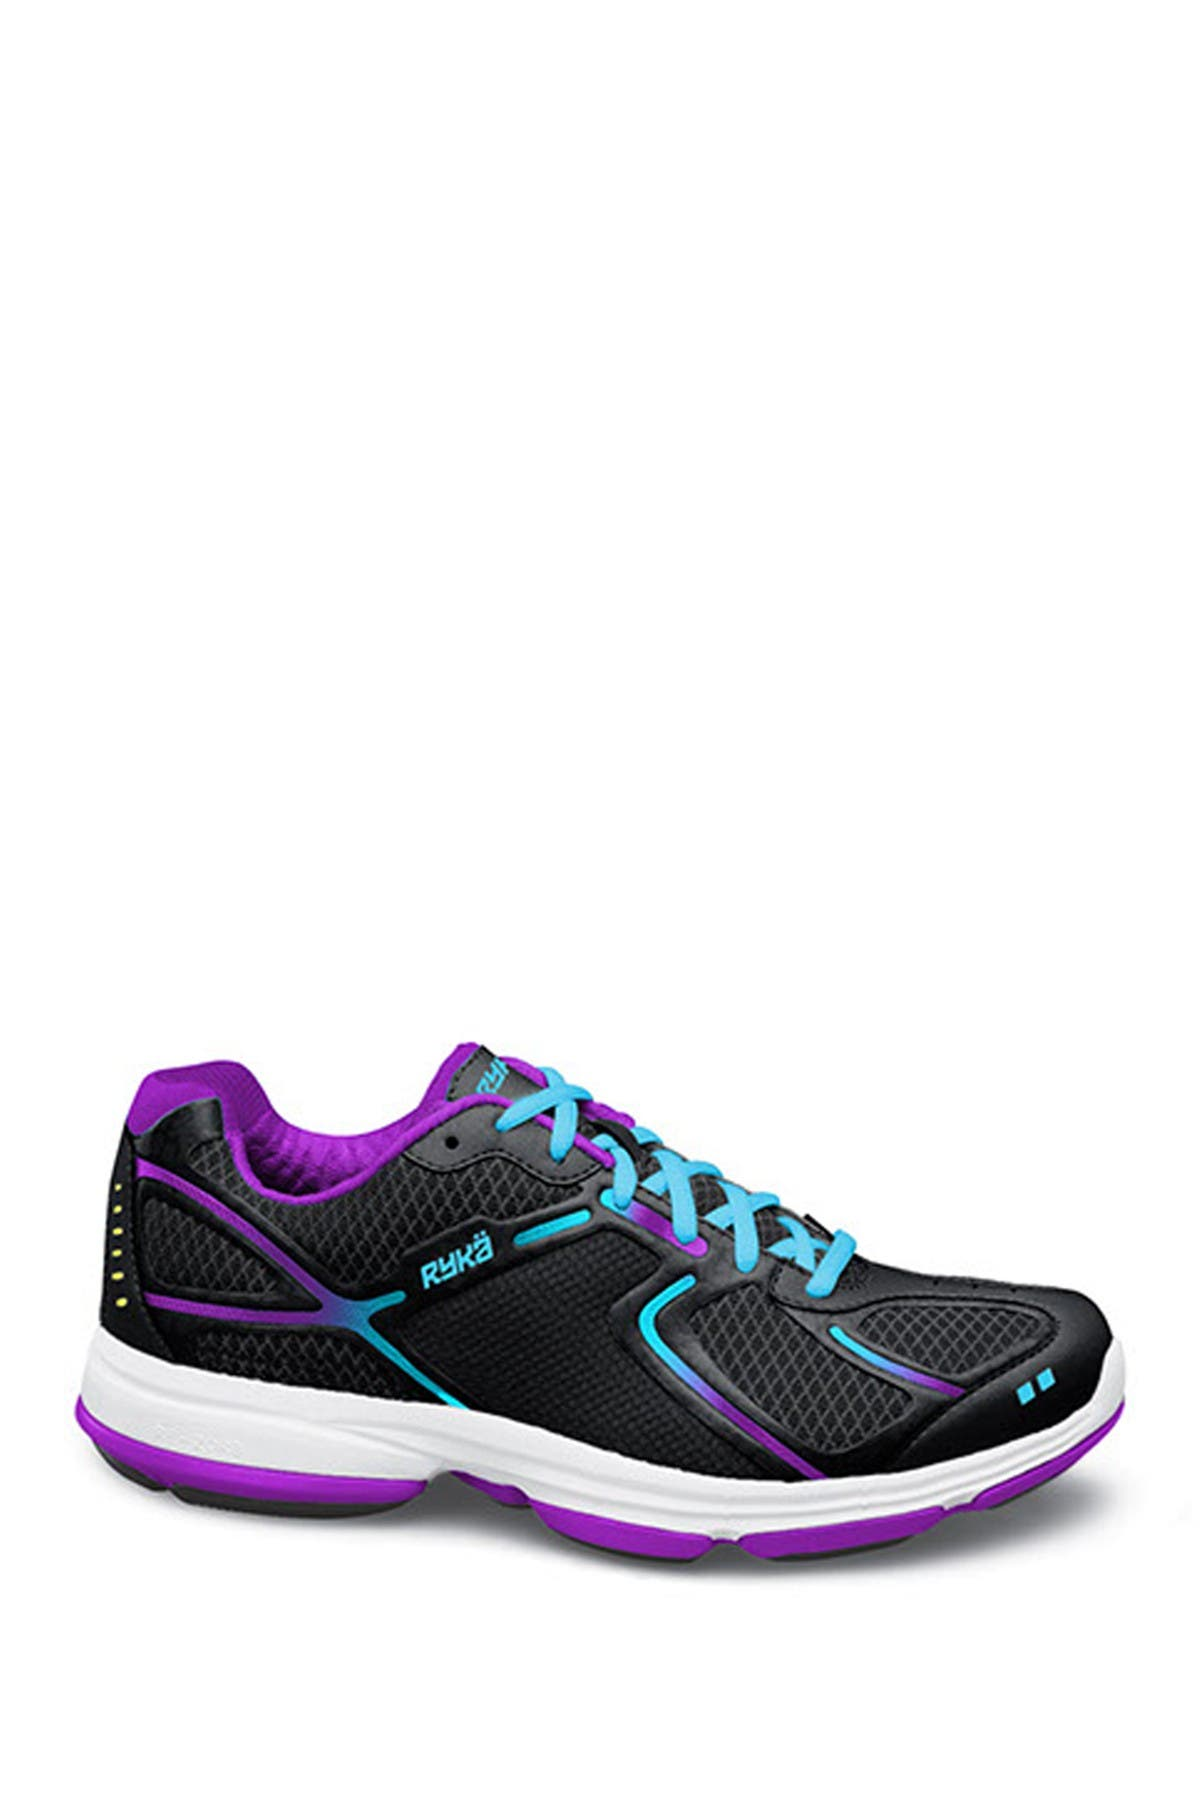 Image of Ryka Devotion Walking Sneaker - Wide Width Available